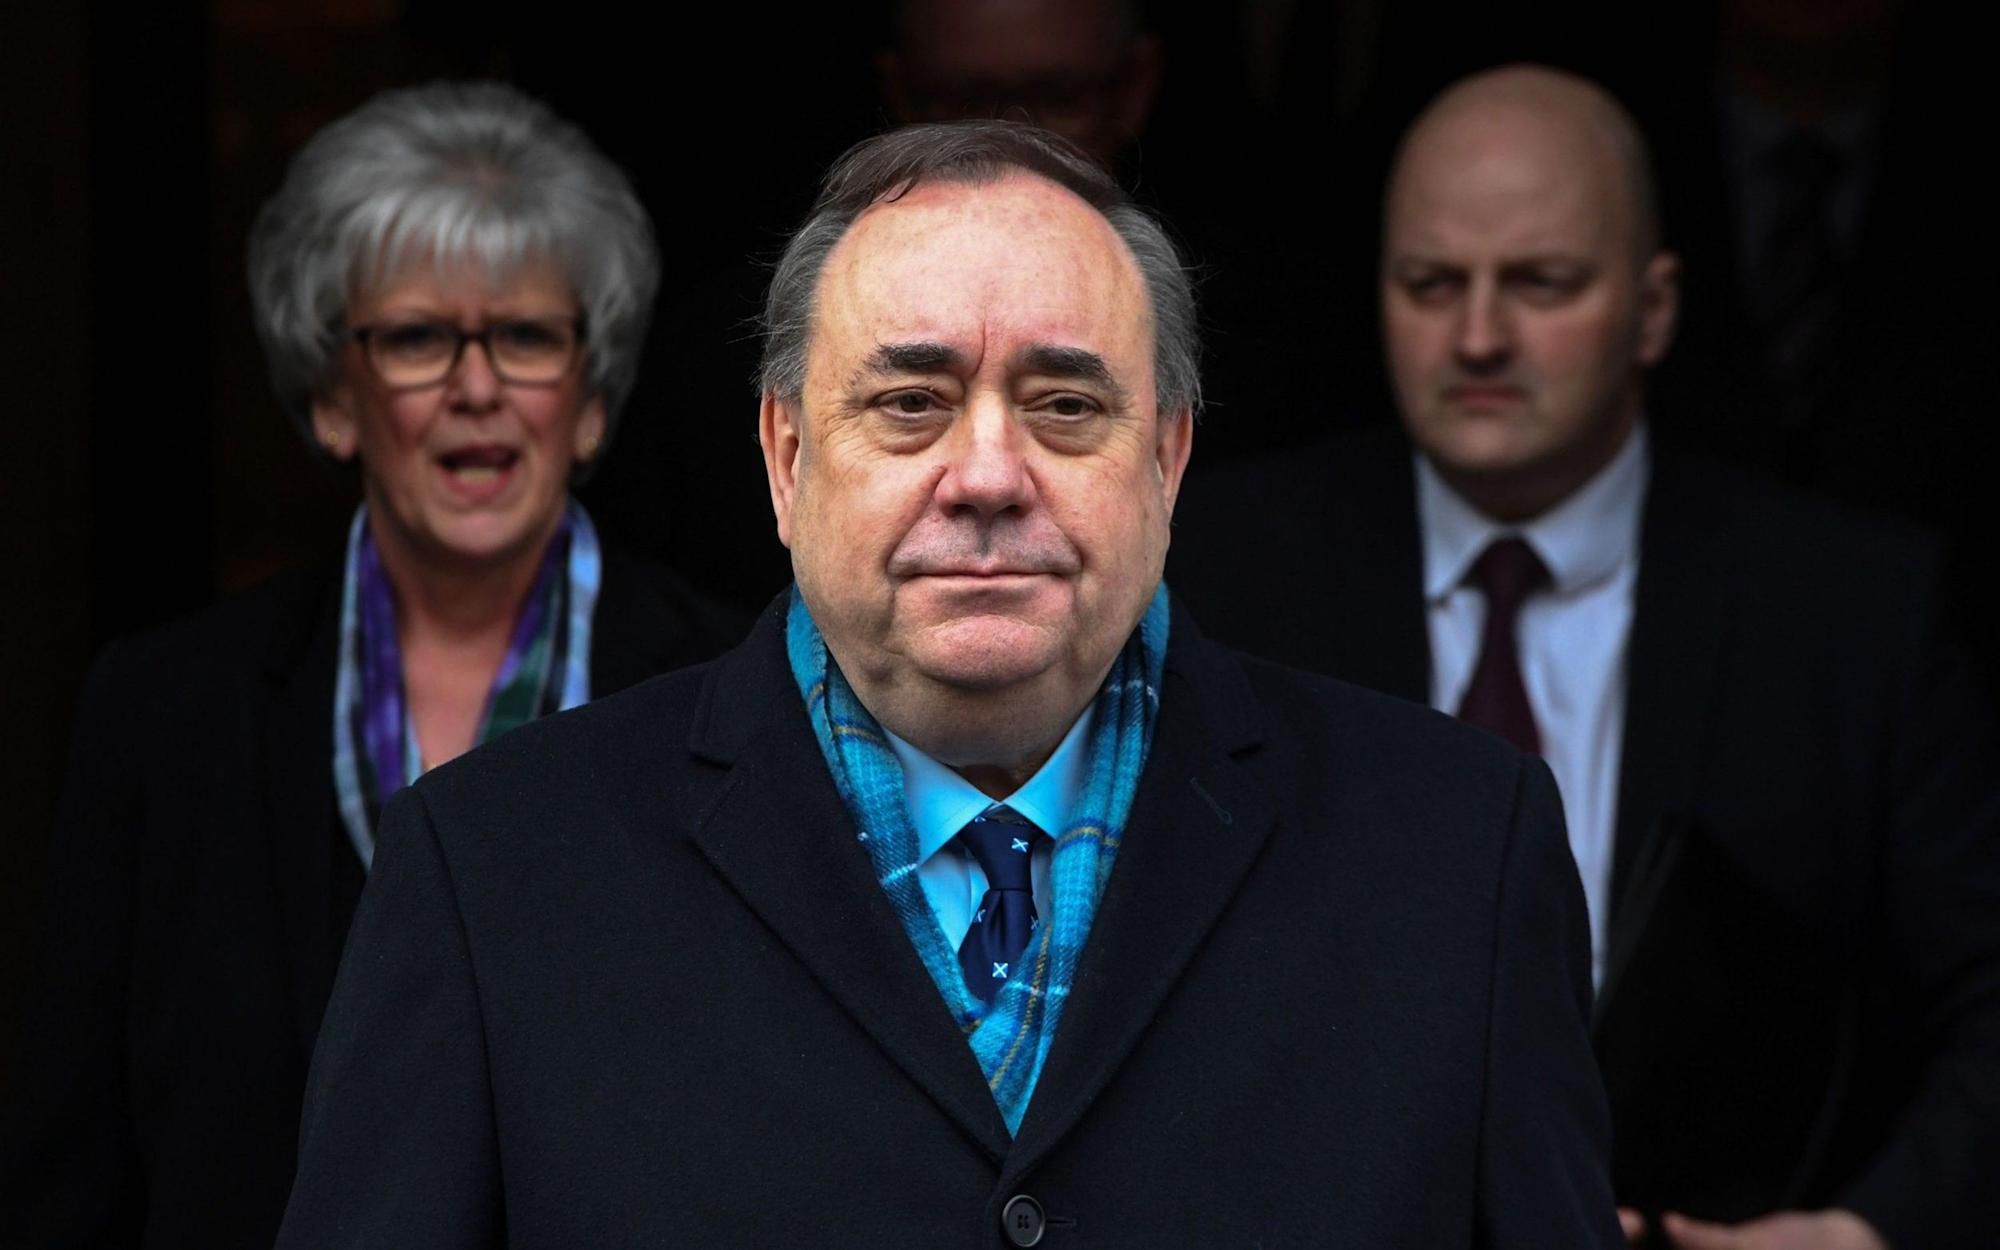 MSPs launch bid to obtain Salmond evidence from prosecutors